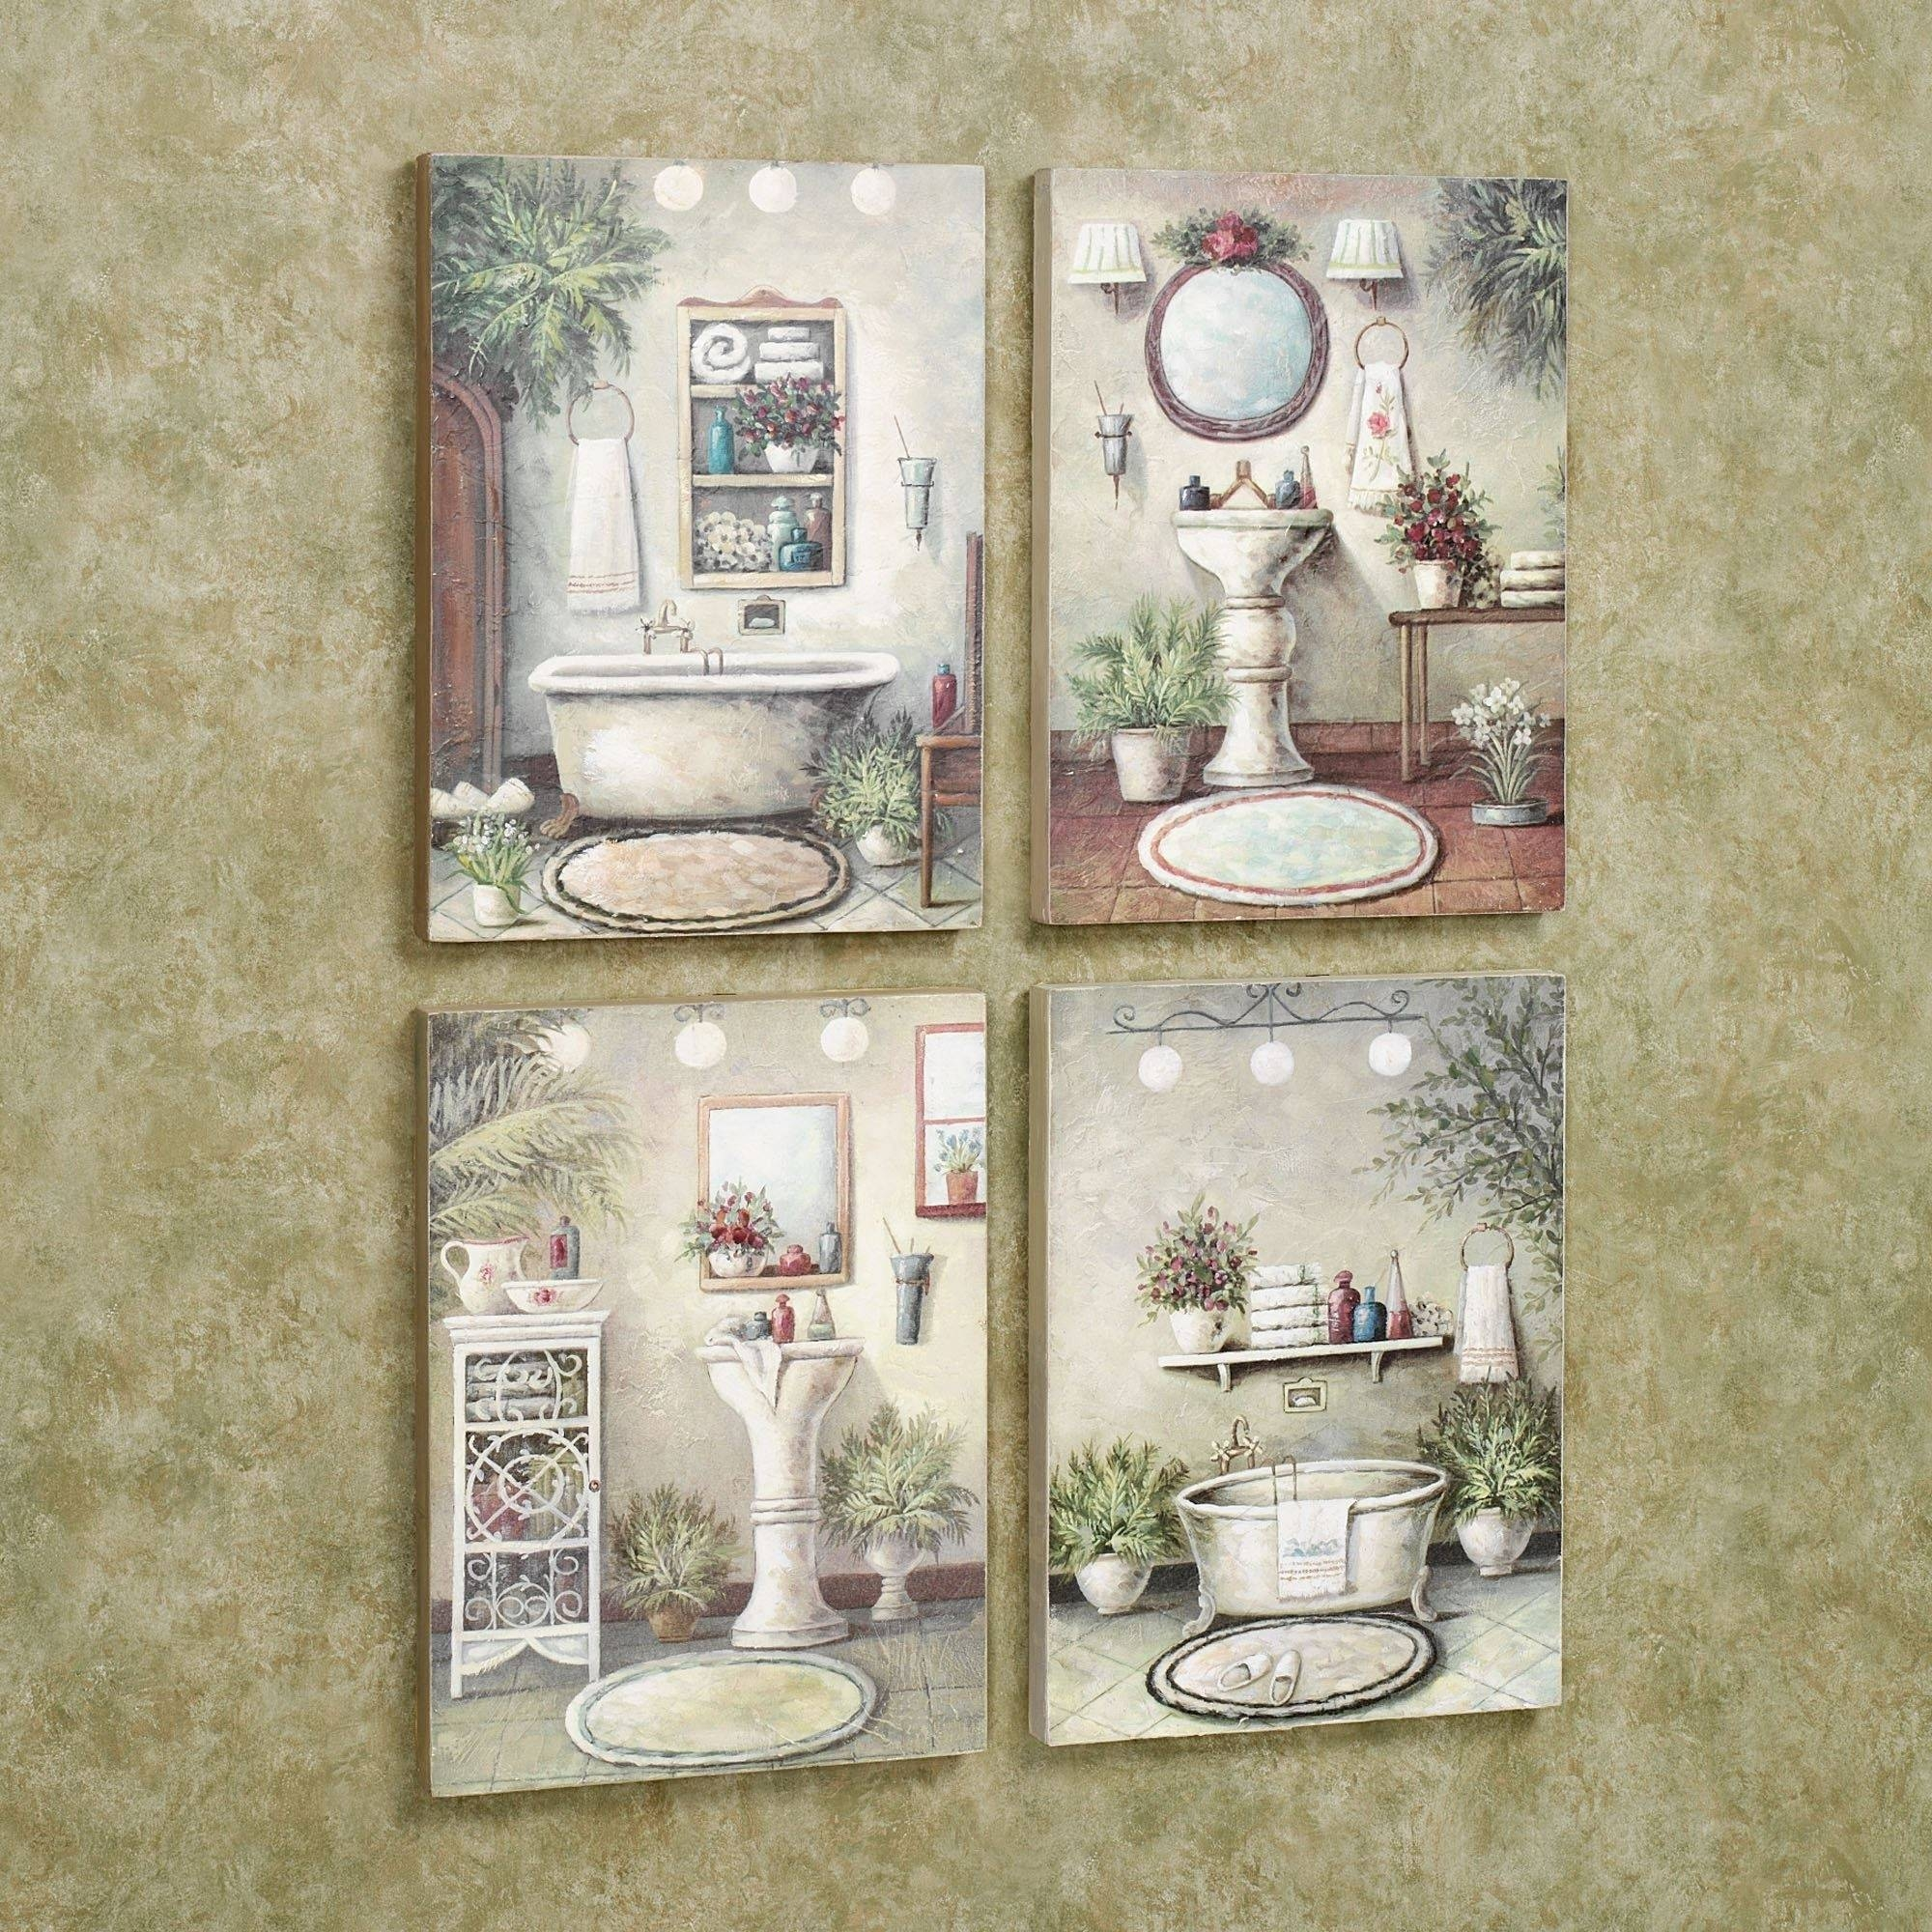 Ideas For Cozy Bathroom Wall Decor — The Decoras Jchansdesigns Throughout Most Current Metal Wall Art For Bathroom (Gallery 20 of 25)